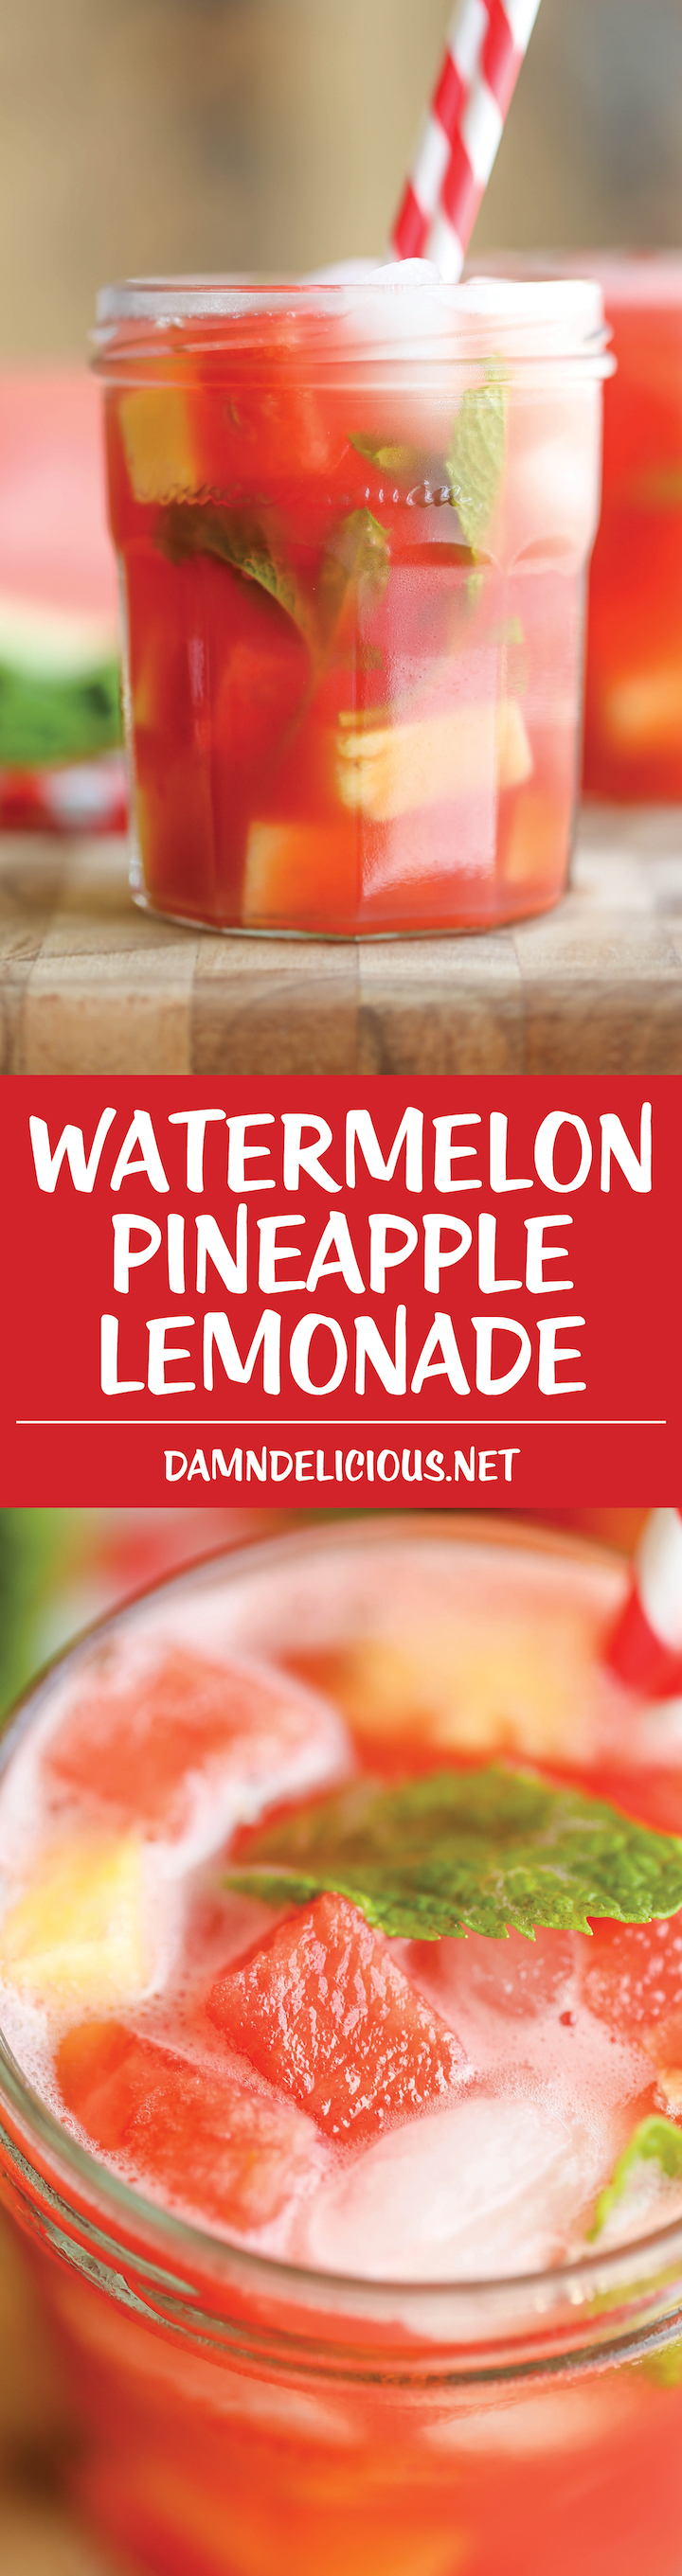 Watermelon Pineapple Lemonade - A fun twist on the traditional lemonade that's wonderfully tangy, sweet, refreshing and incredibly easy to whip up!